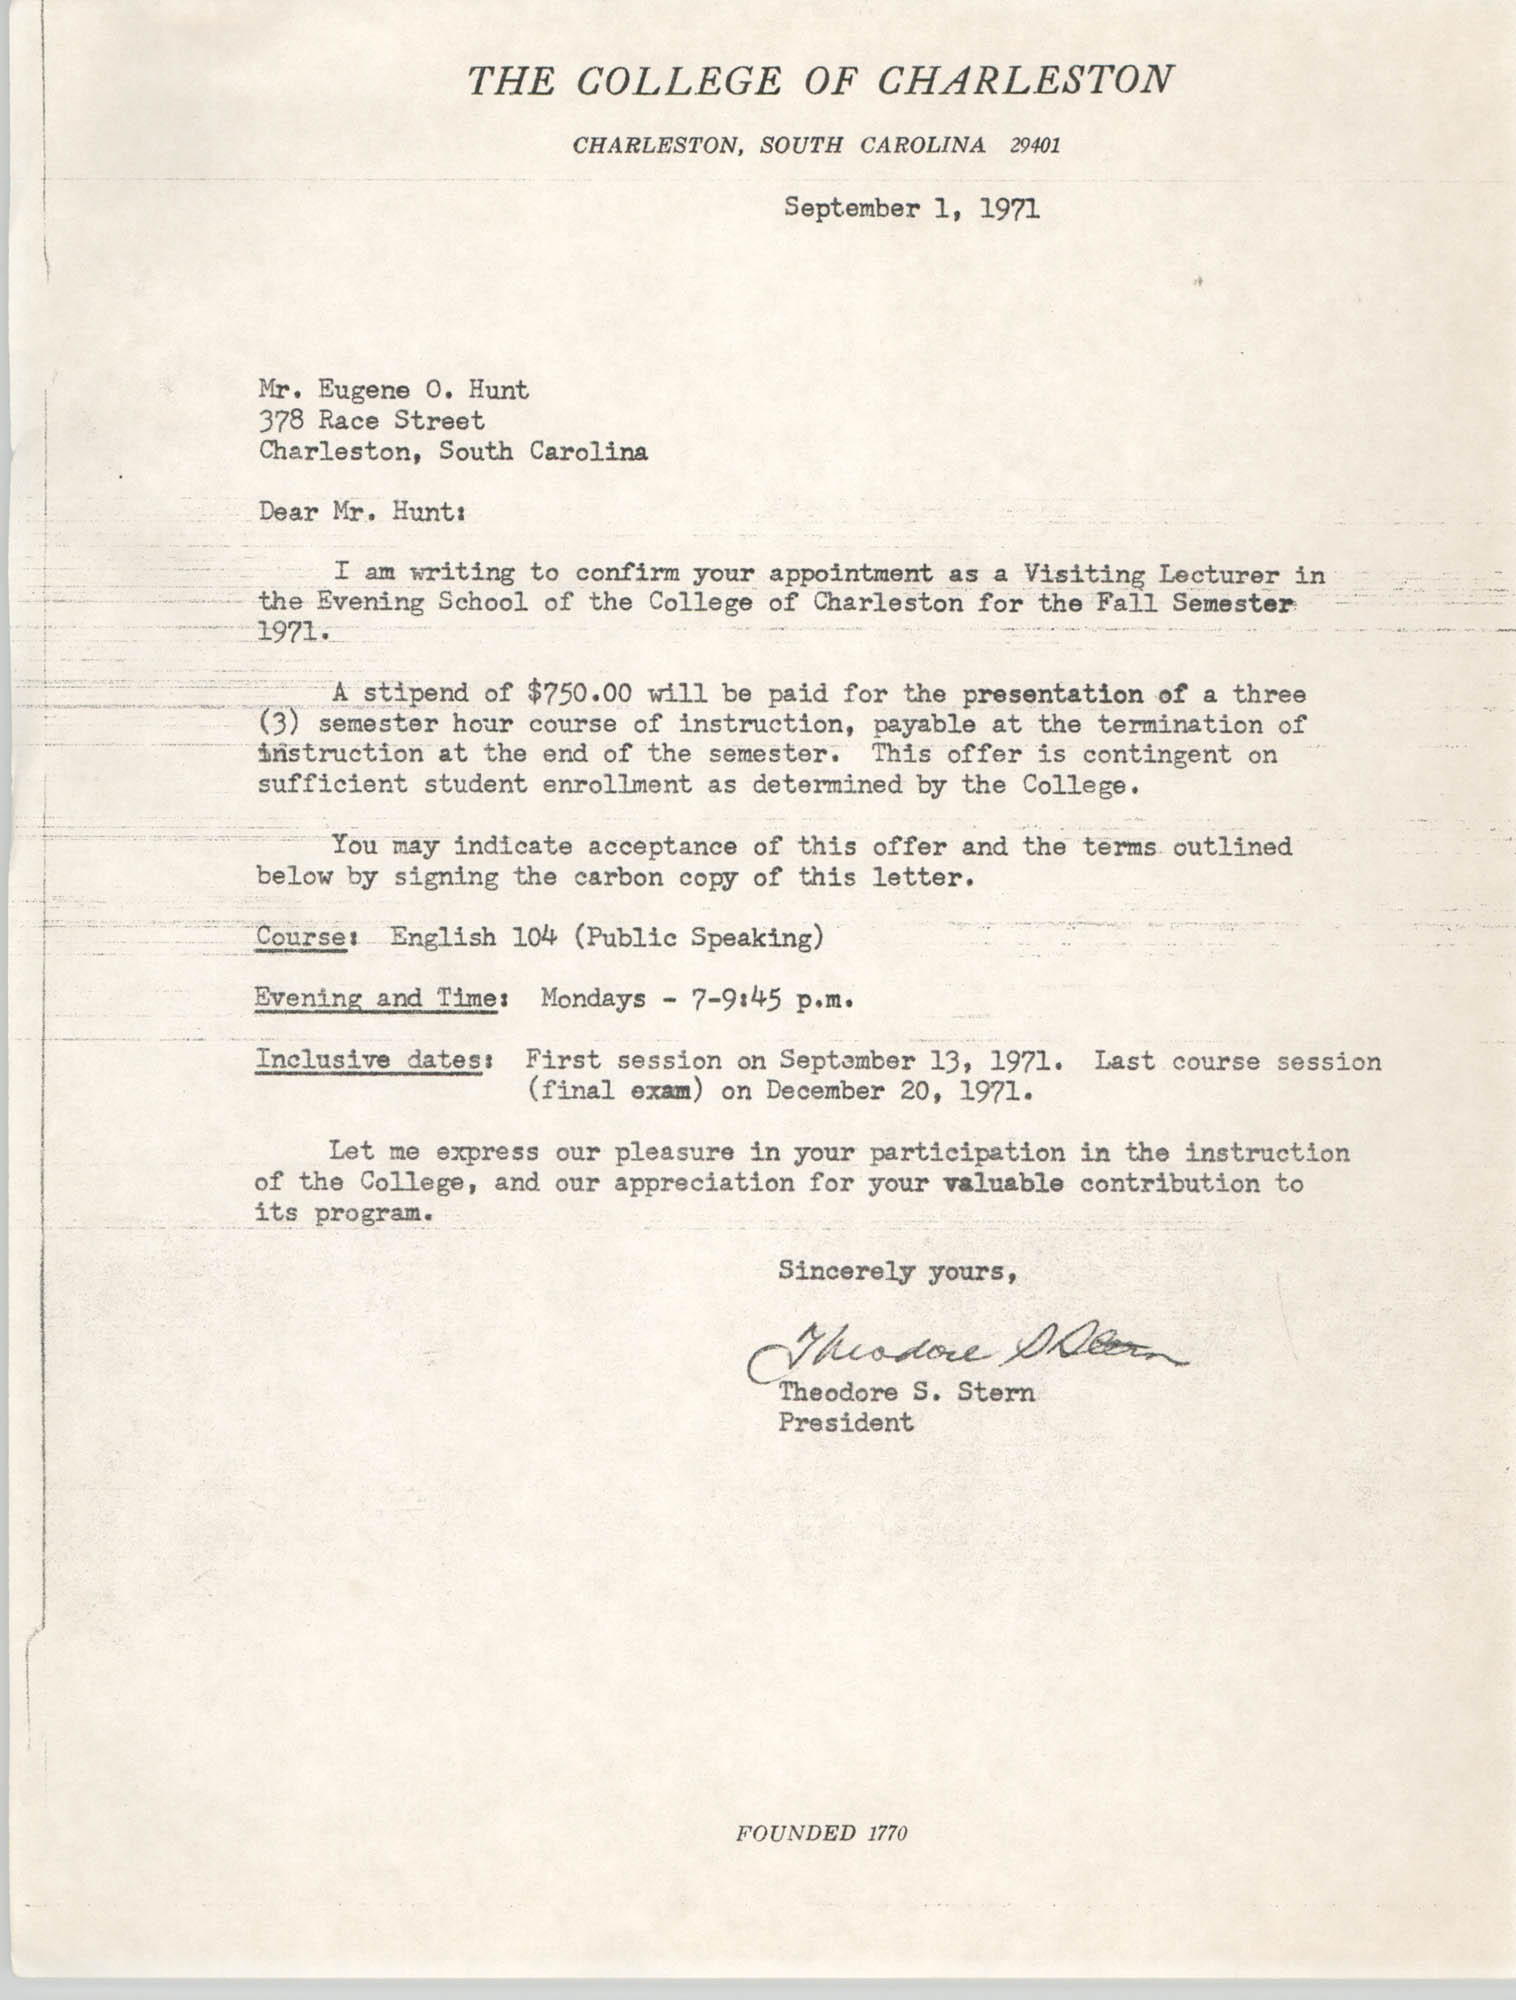 Letter from Theodore S. Stern to Eugene C. Hunt, September 1, 1971